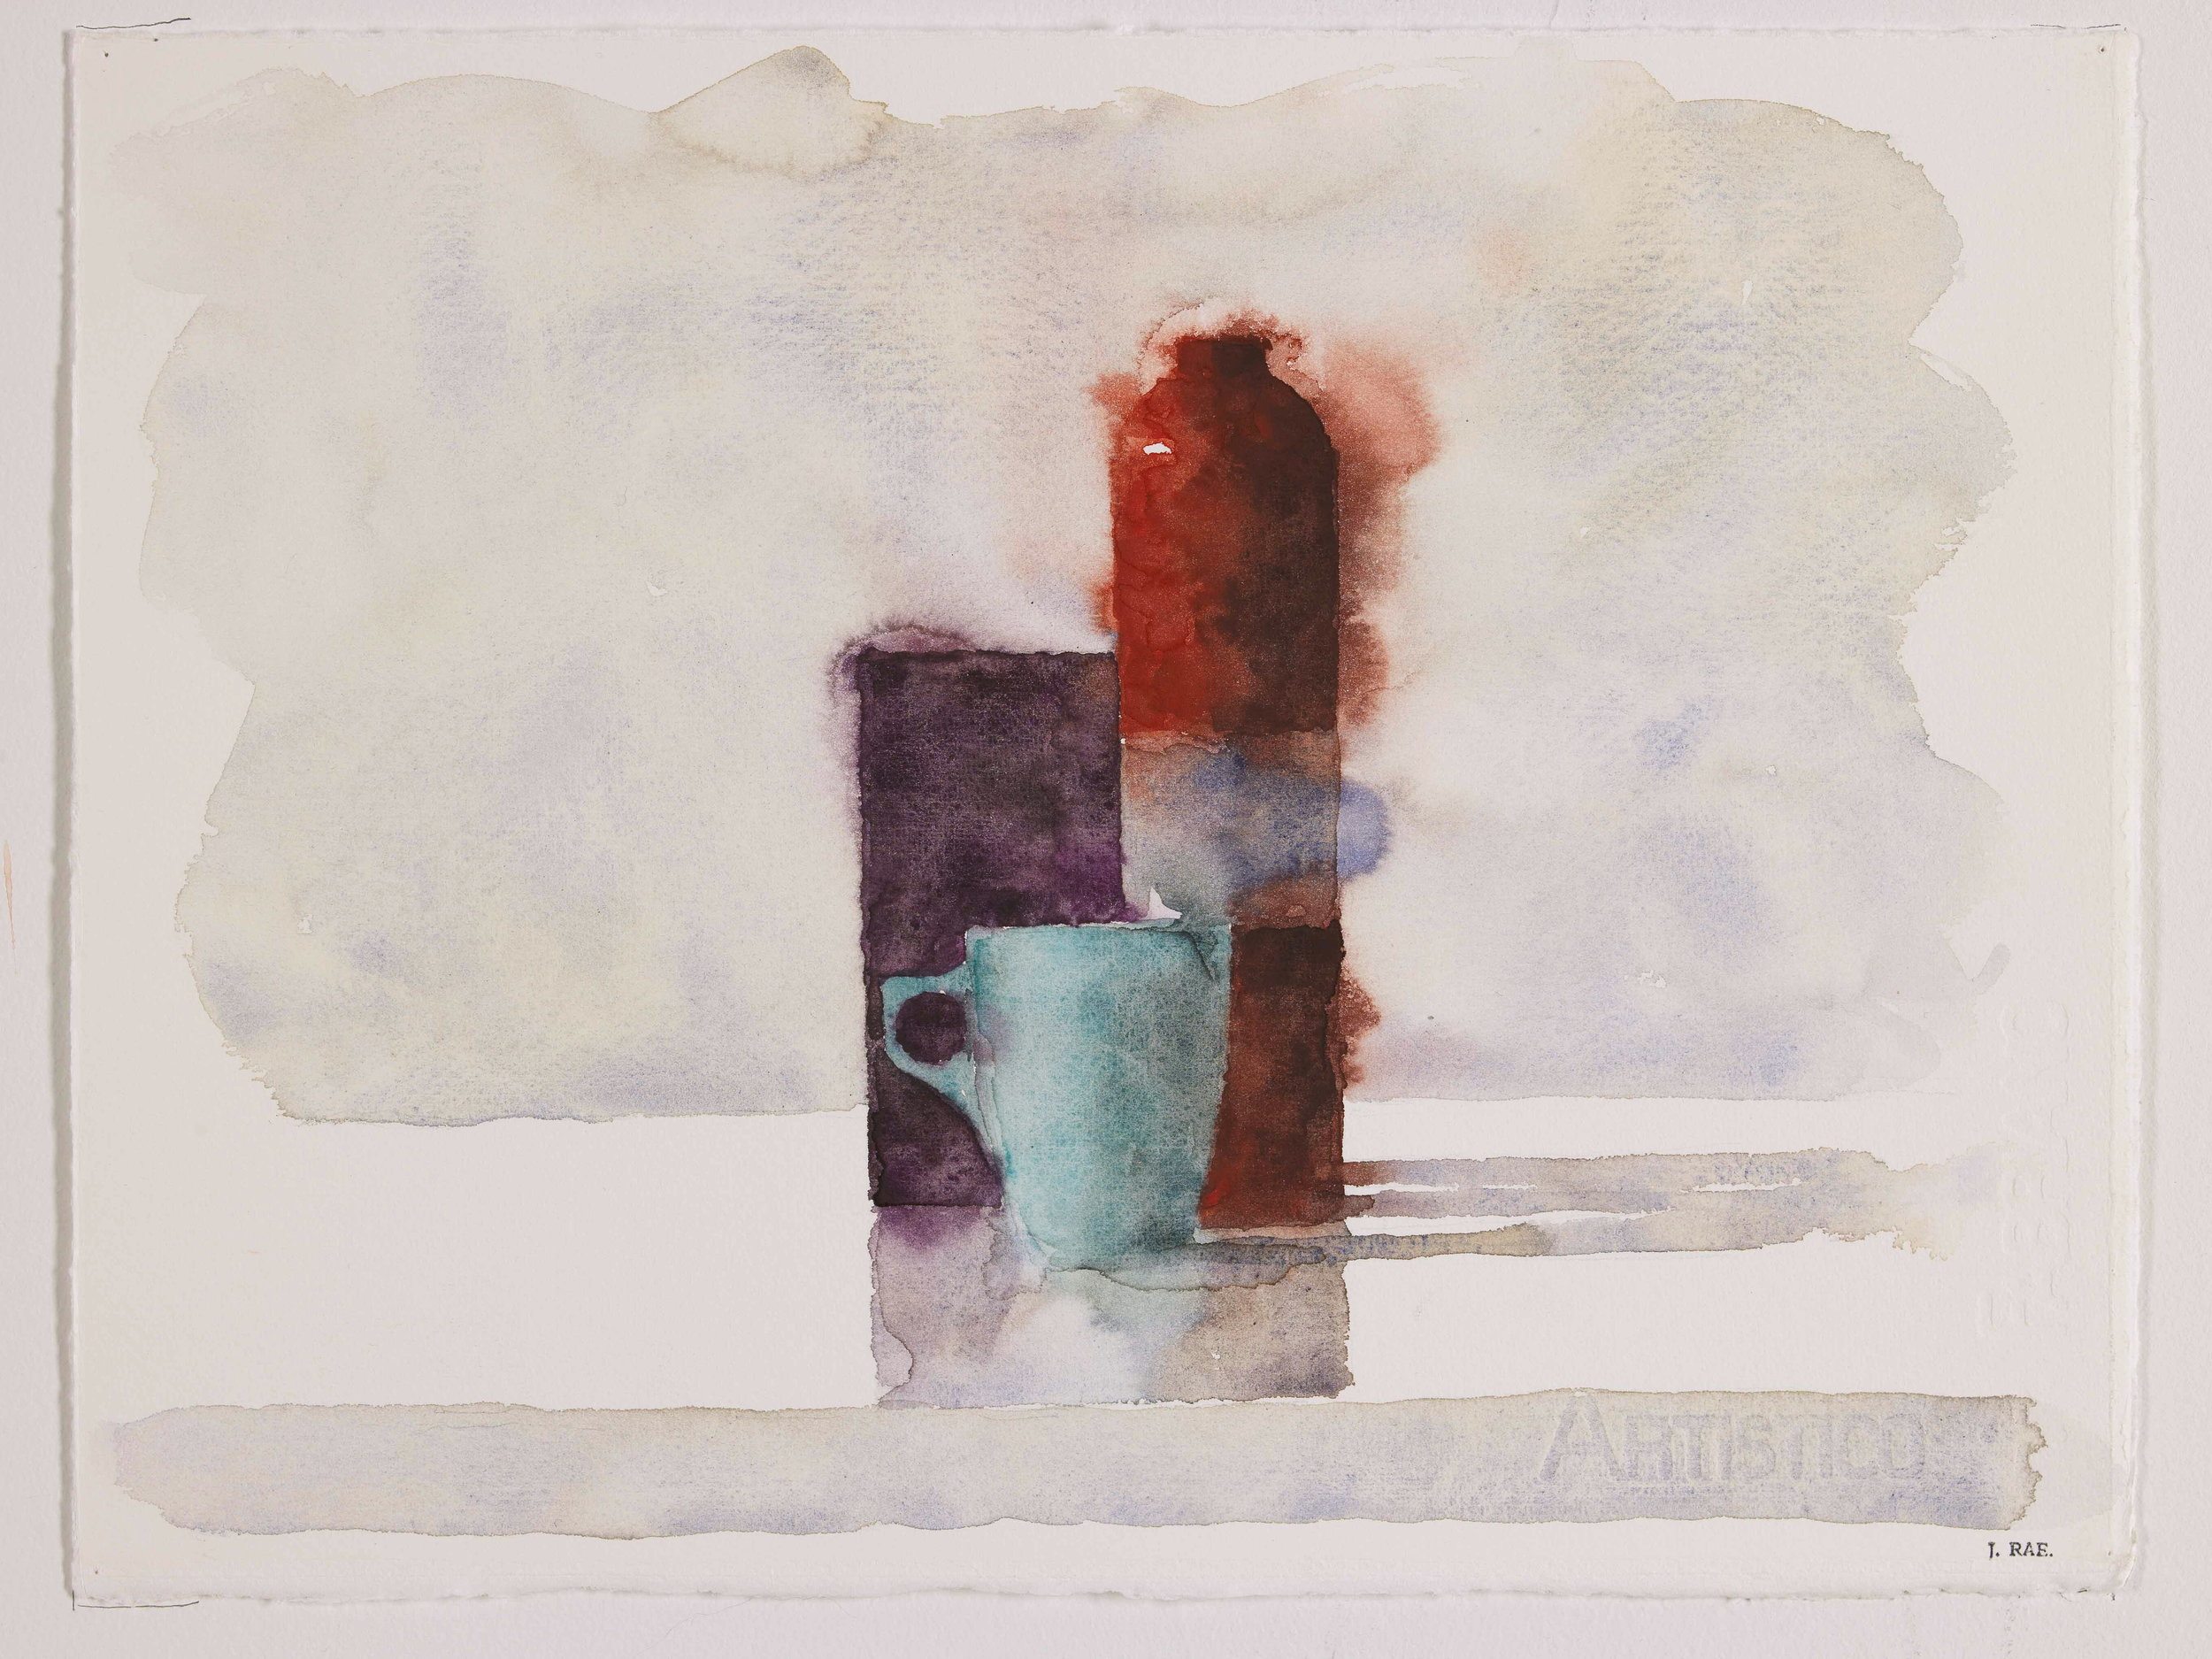 WCSL120, 2010, water colour on paper, 38 x 29cm.